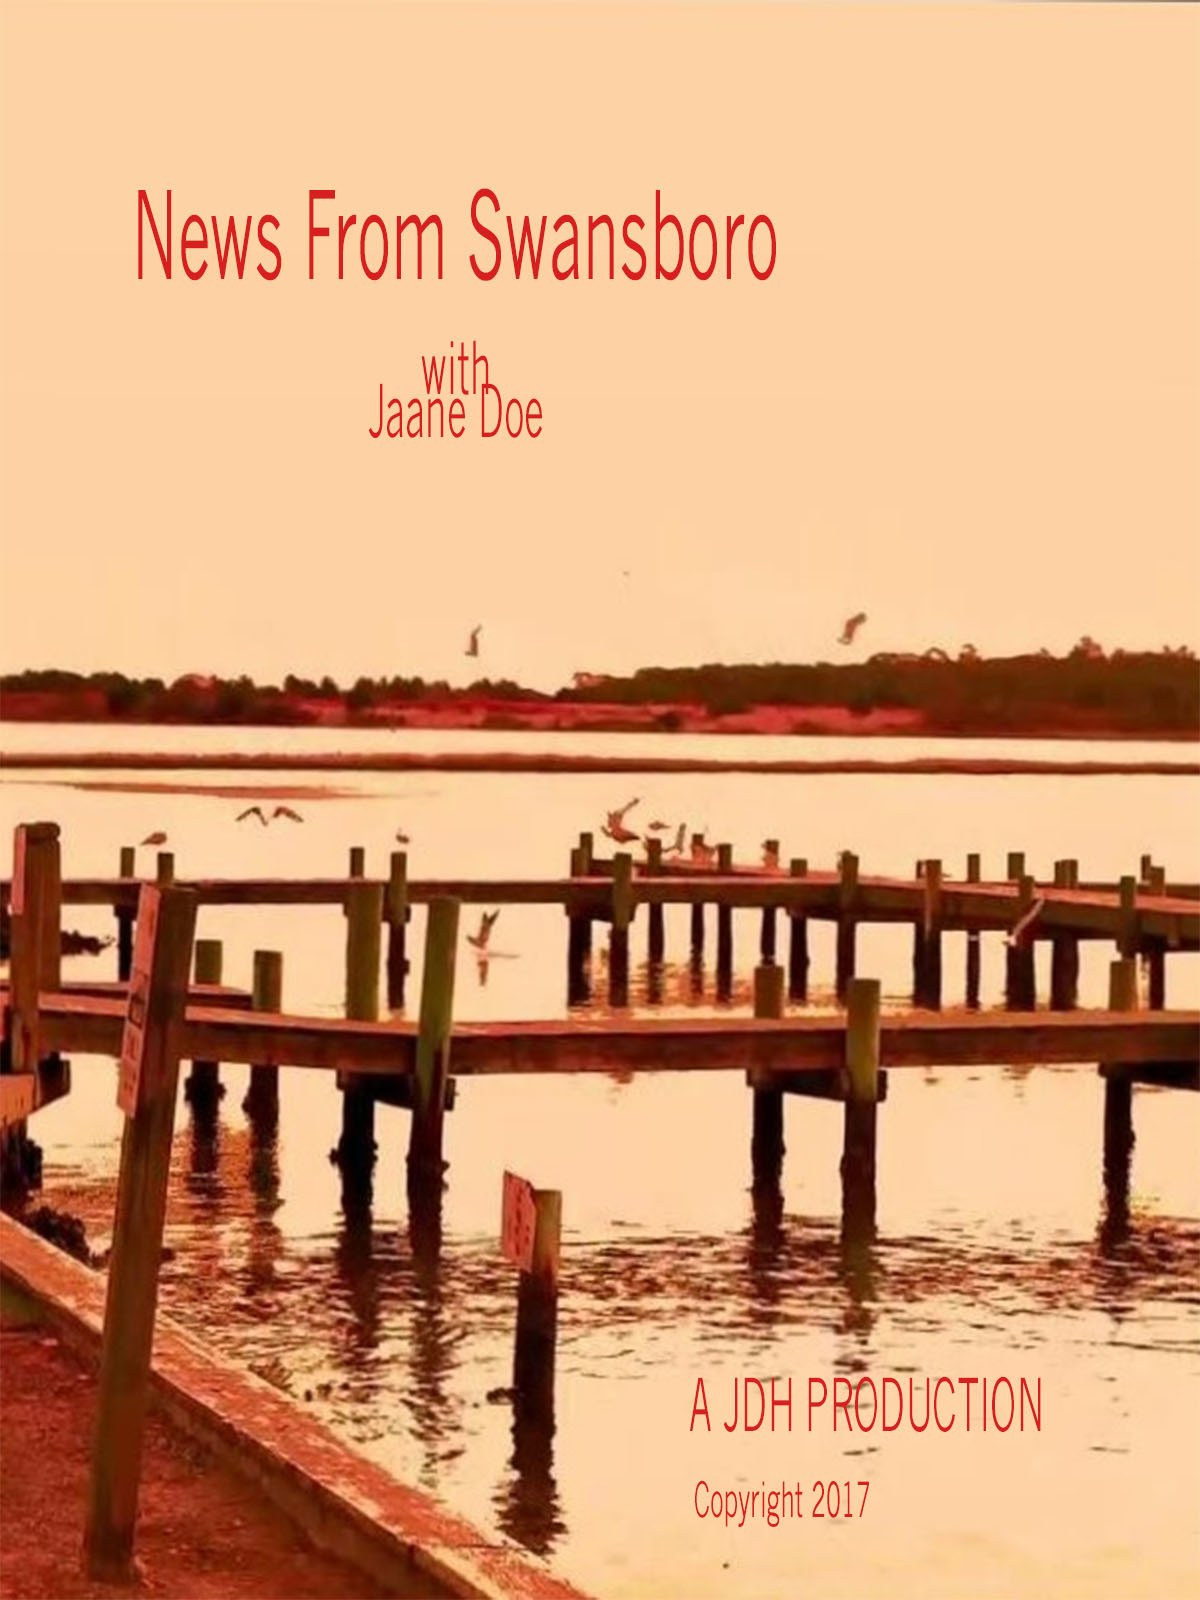 News From Swansboro